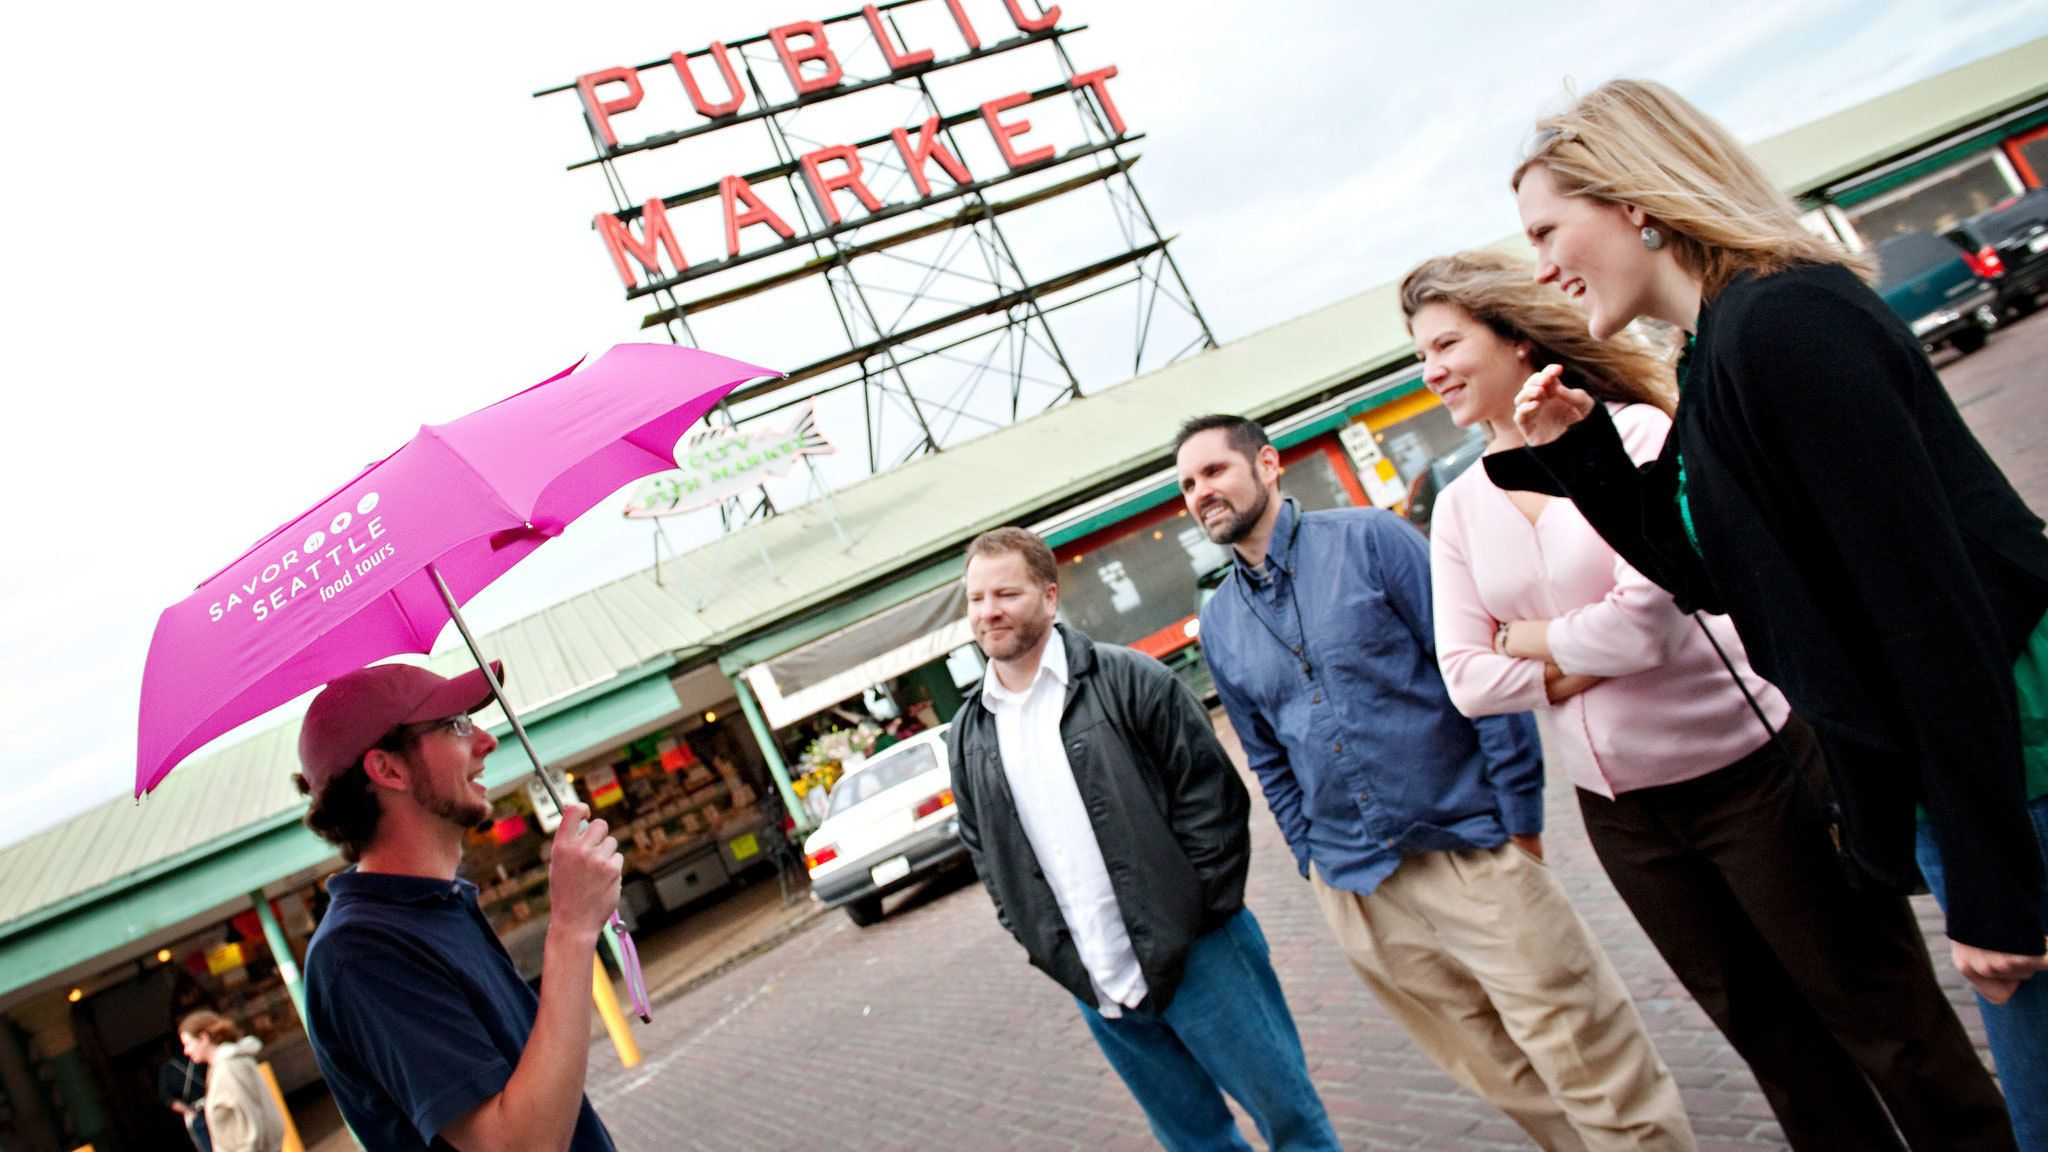 Tour guide with group at Pike Place Market in Seattle